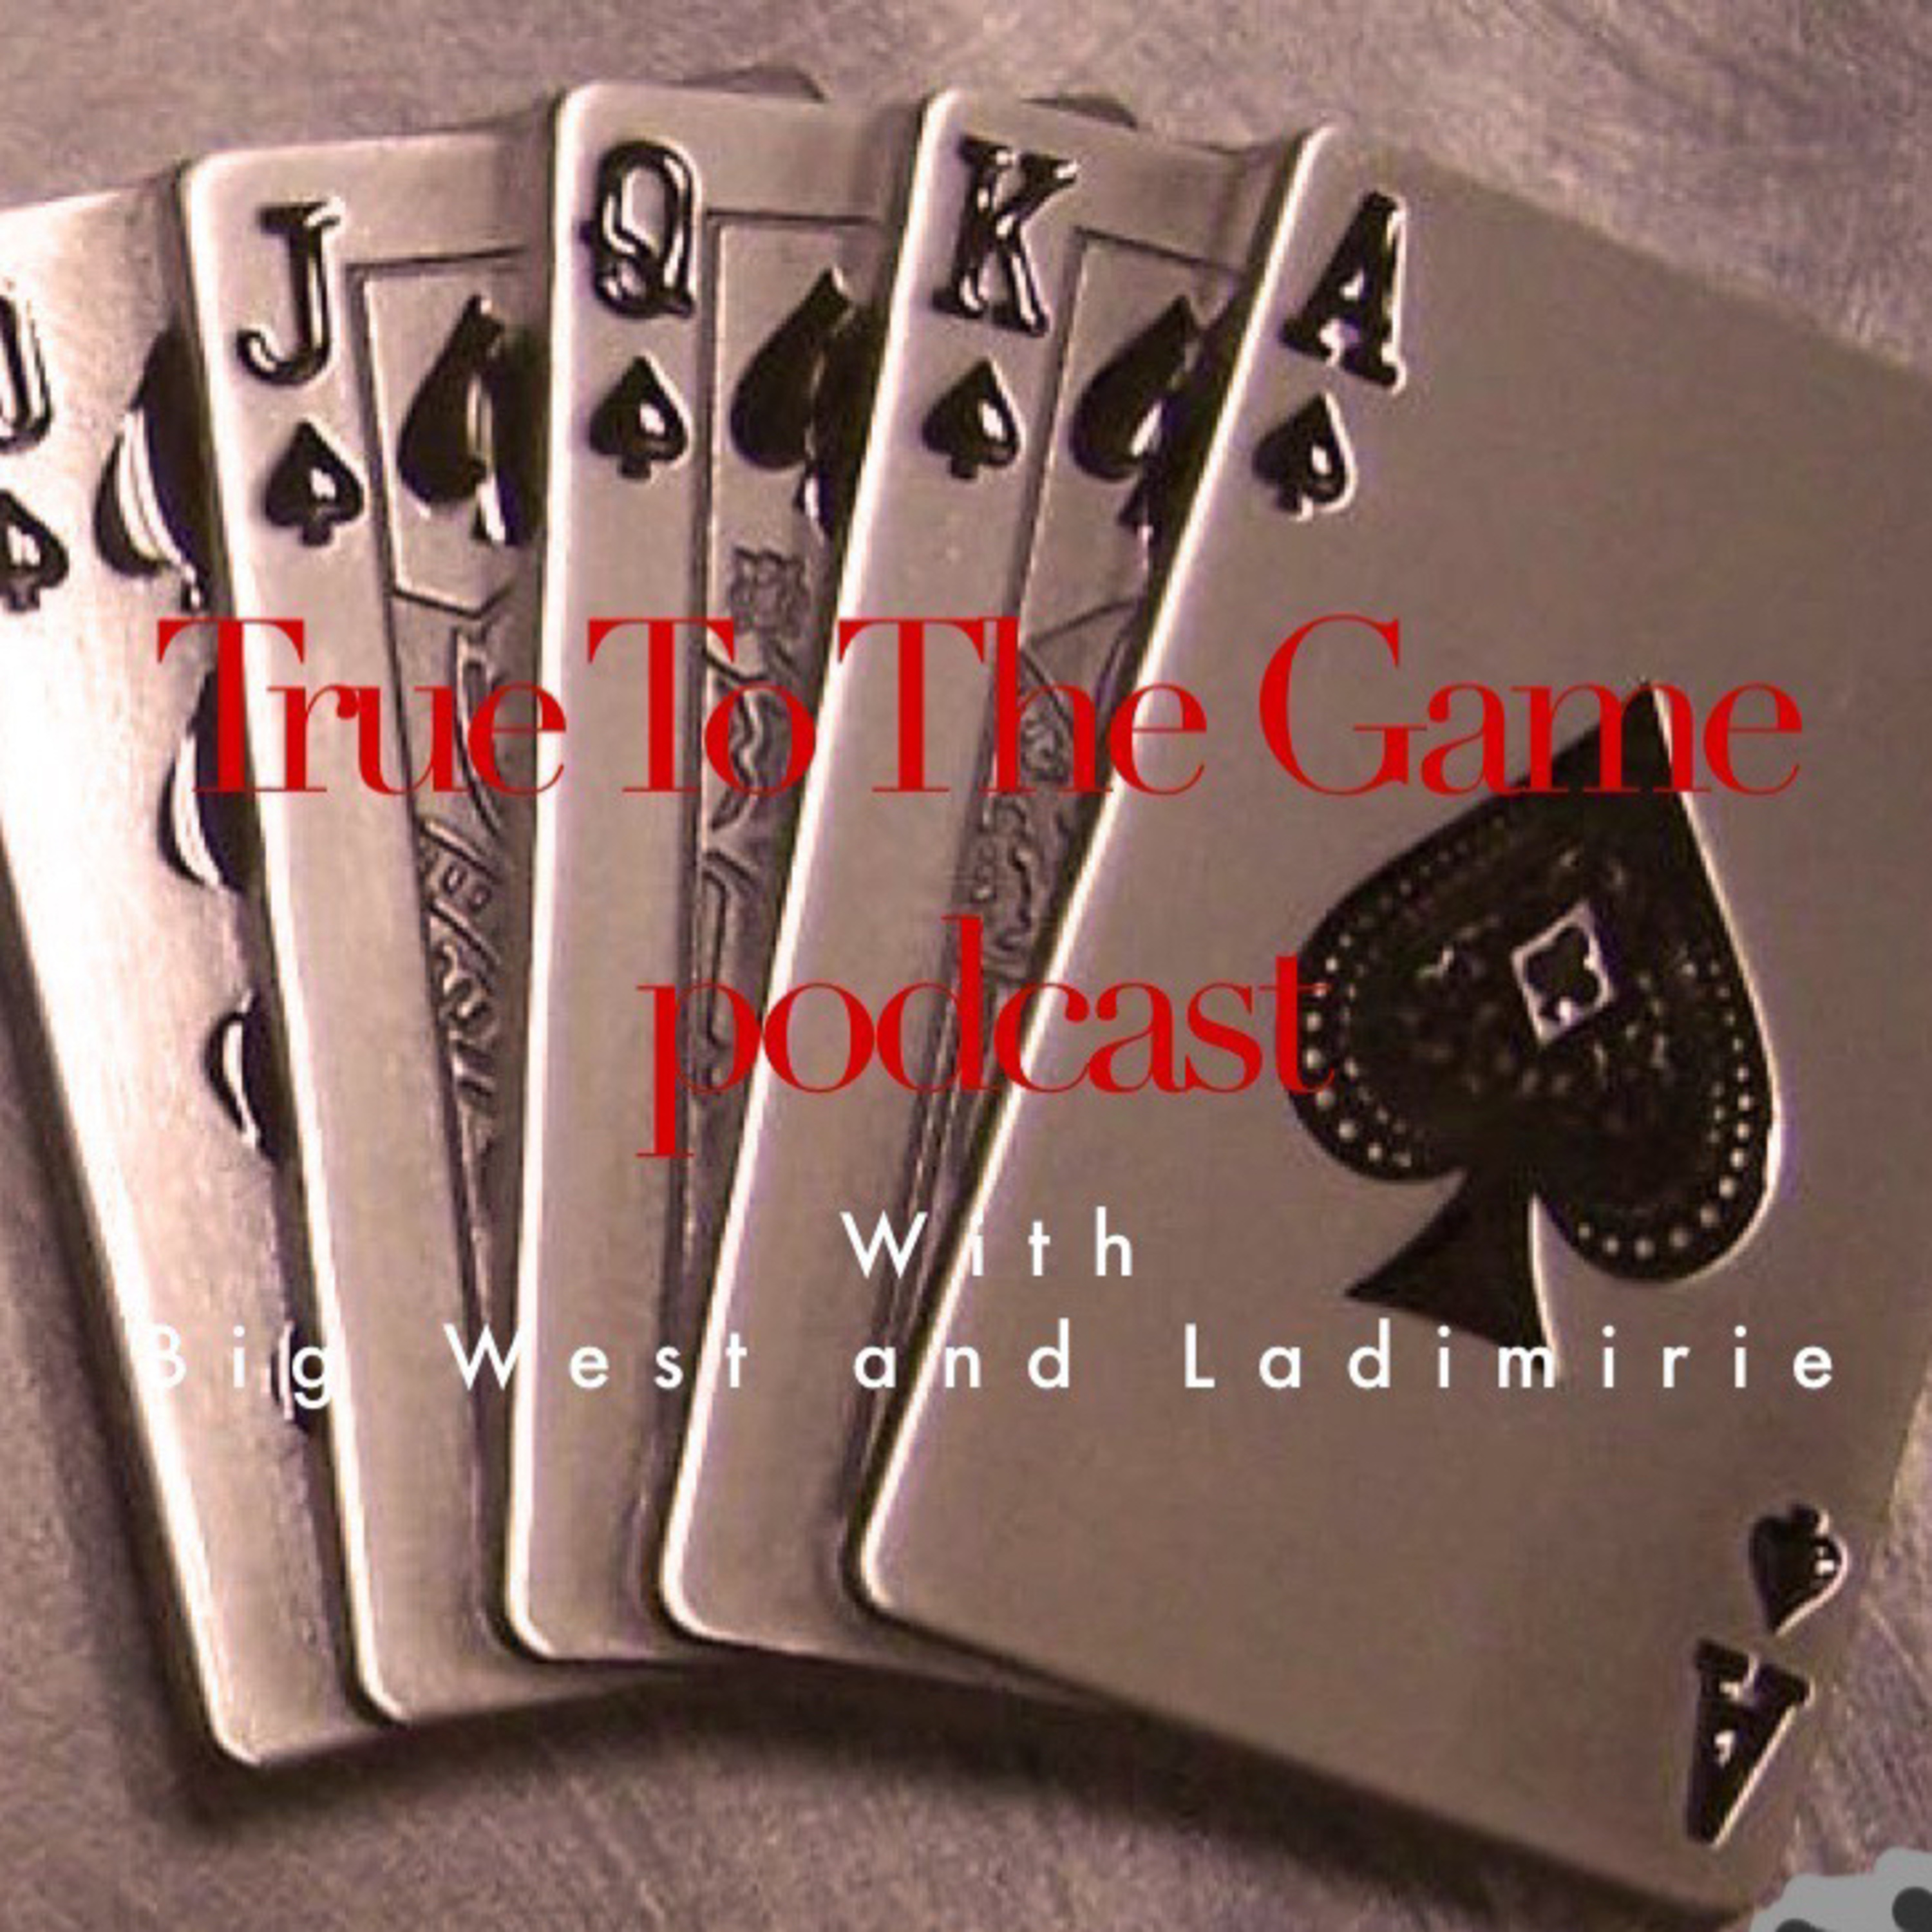 True to the game podcast Episode 7: handcuffing